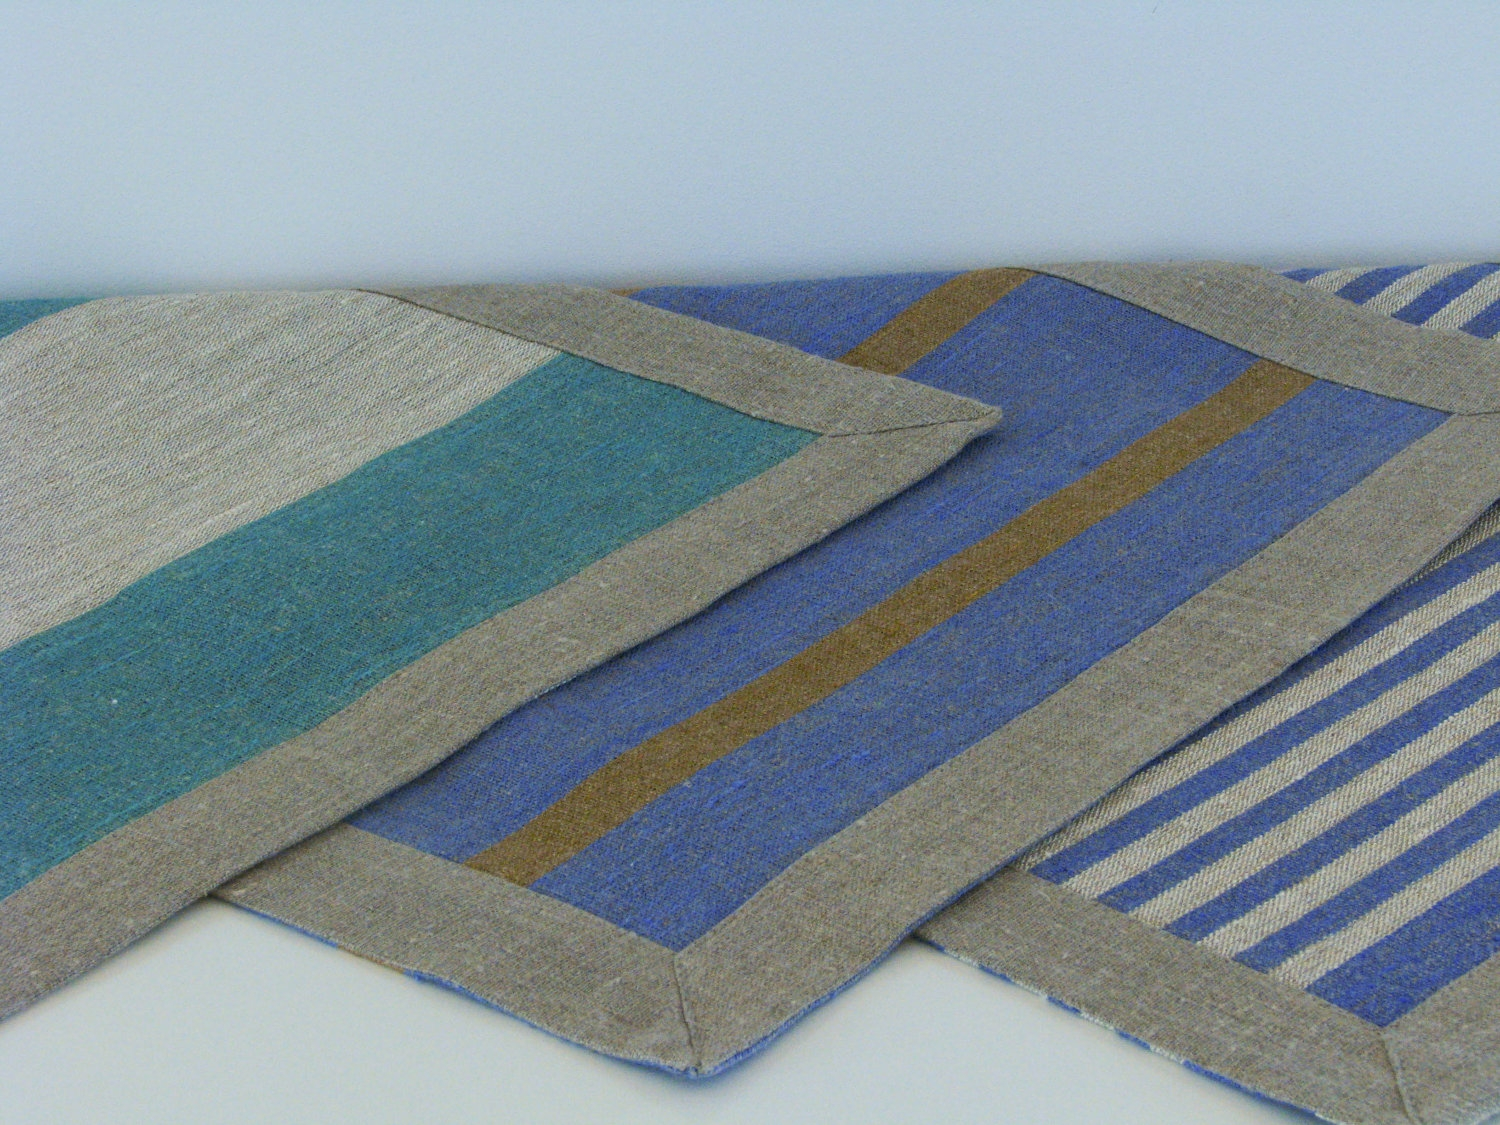 Linen Bath Mat Bath Rug Striped Blue Green Brown Or Pertaining To Striped Mats (View 6 of 15)